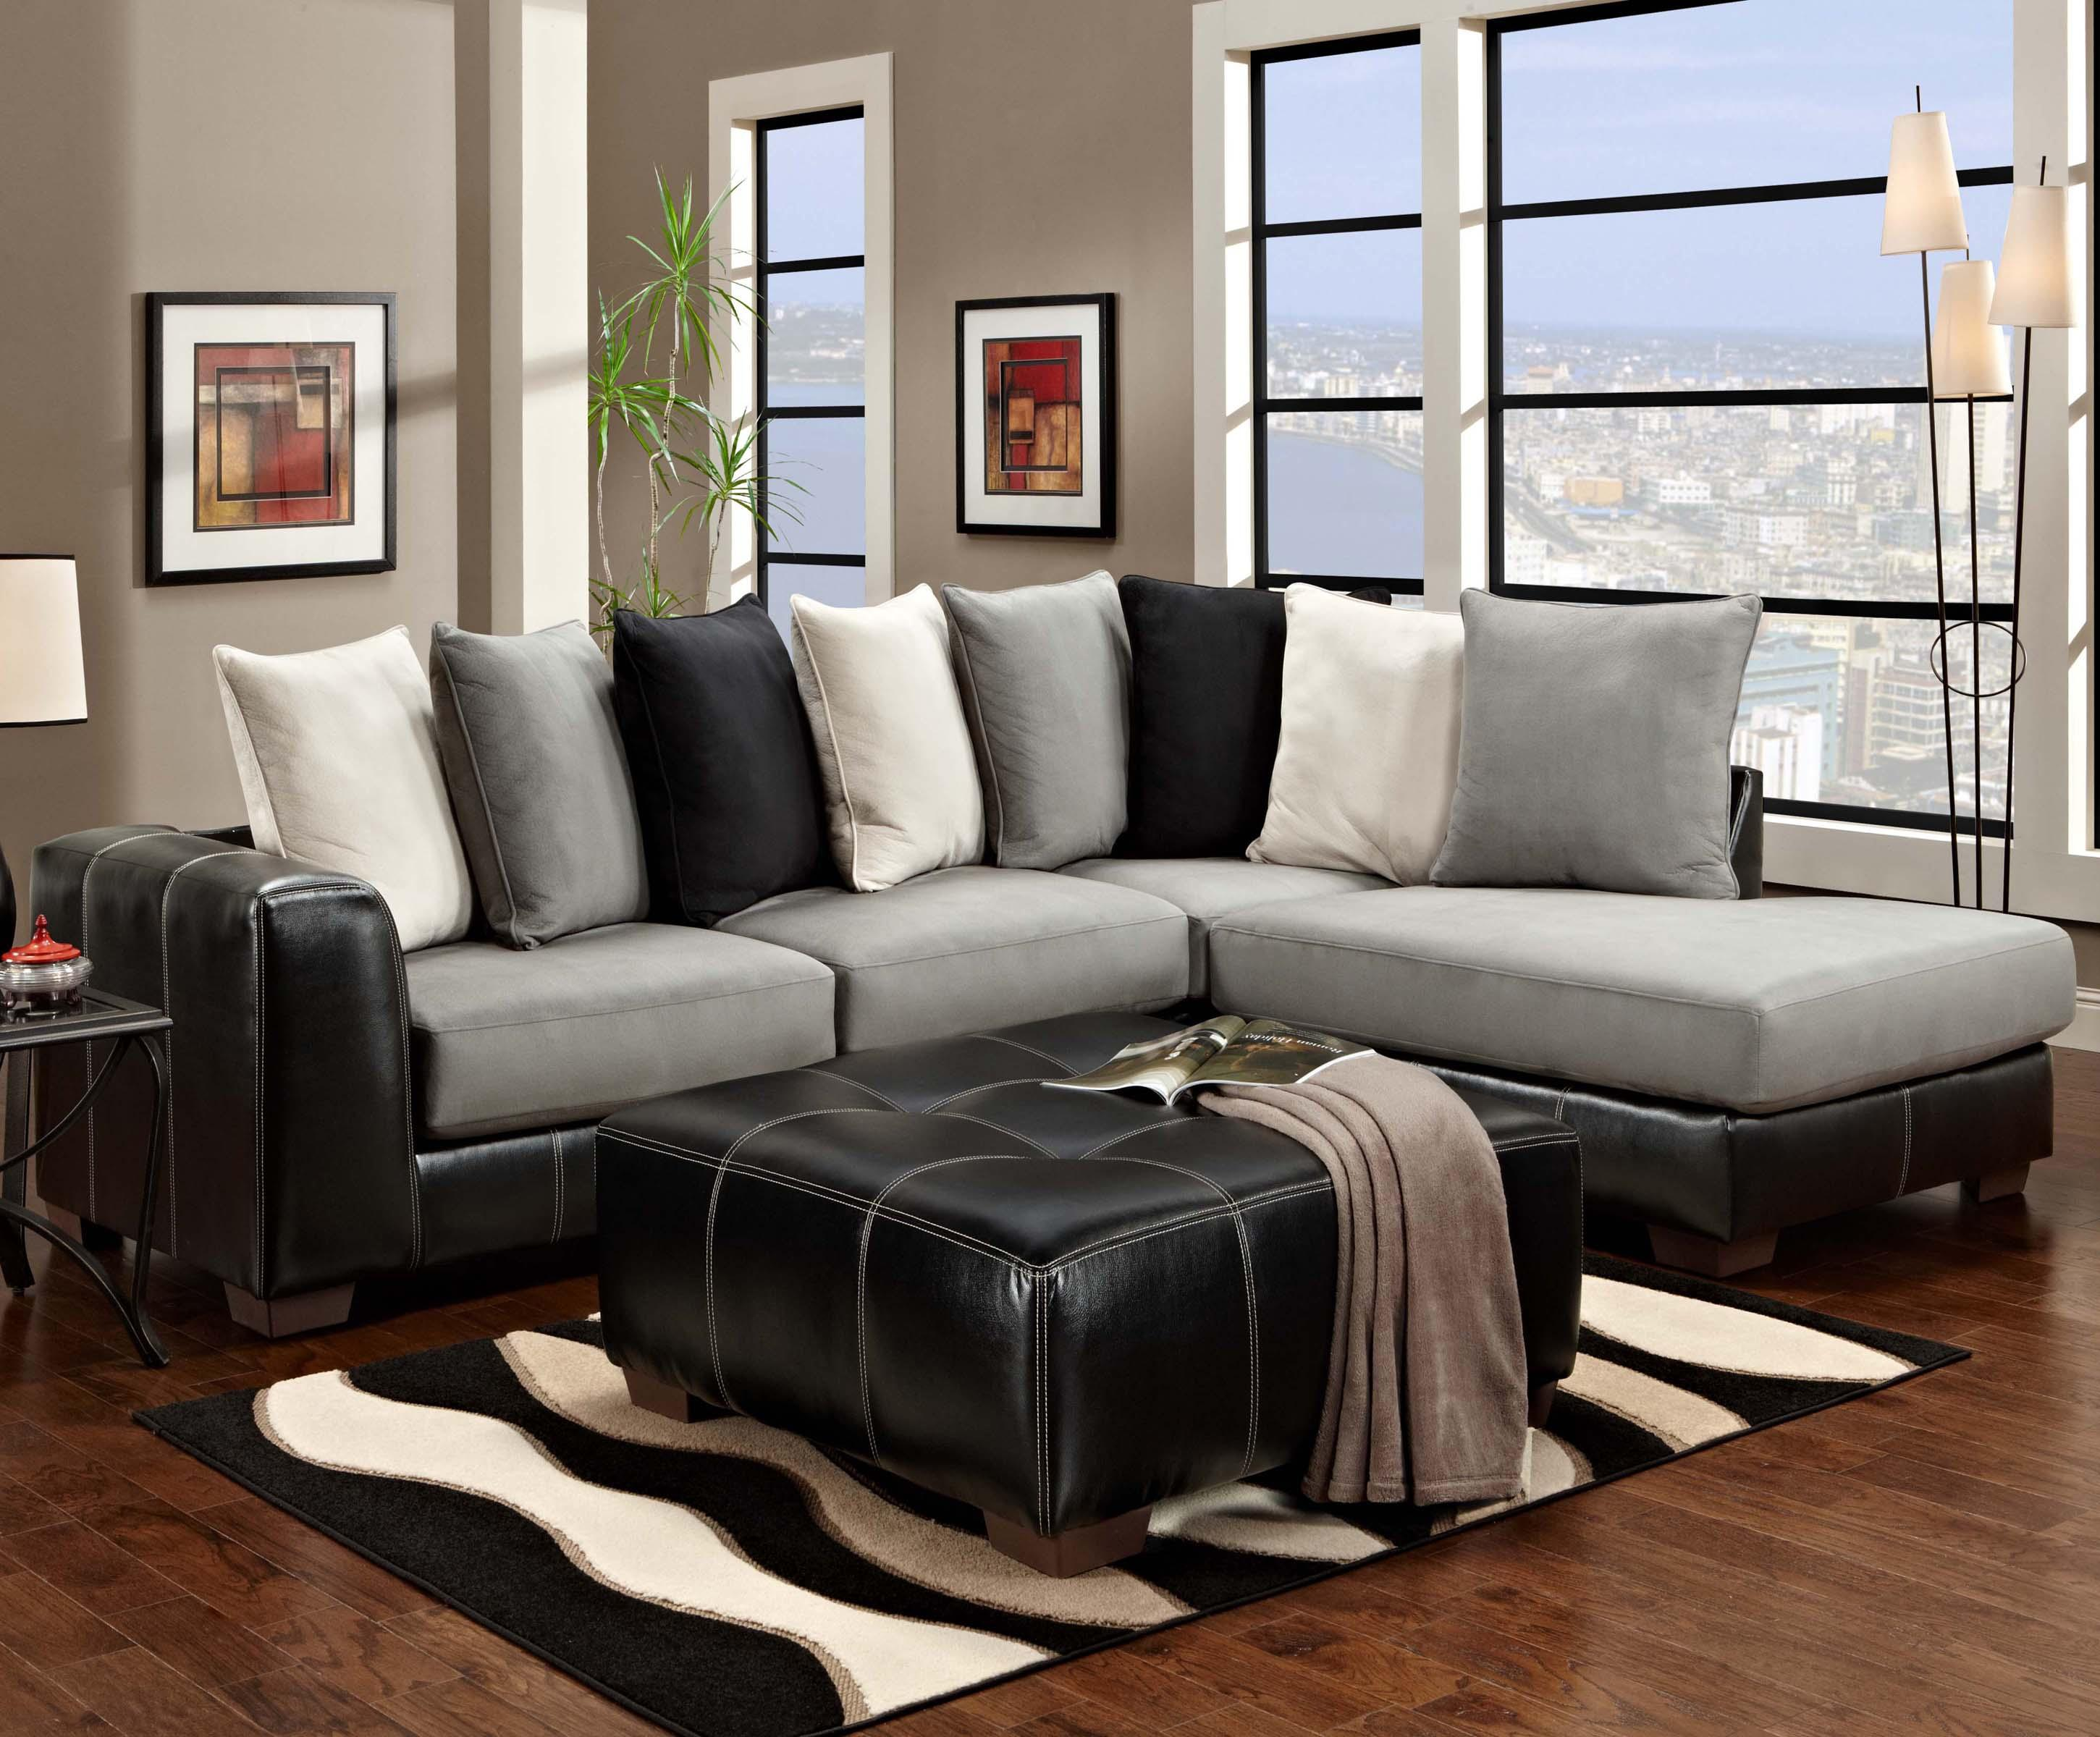 affordable furniture 6350 two piece sectional with chaise colder 39 s furniture and appliance. Black Bedroom Furniture Sets. Home Design Ideas